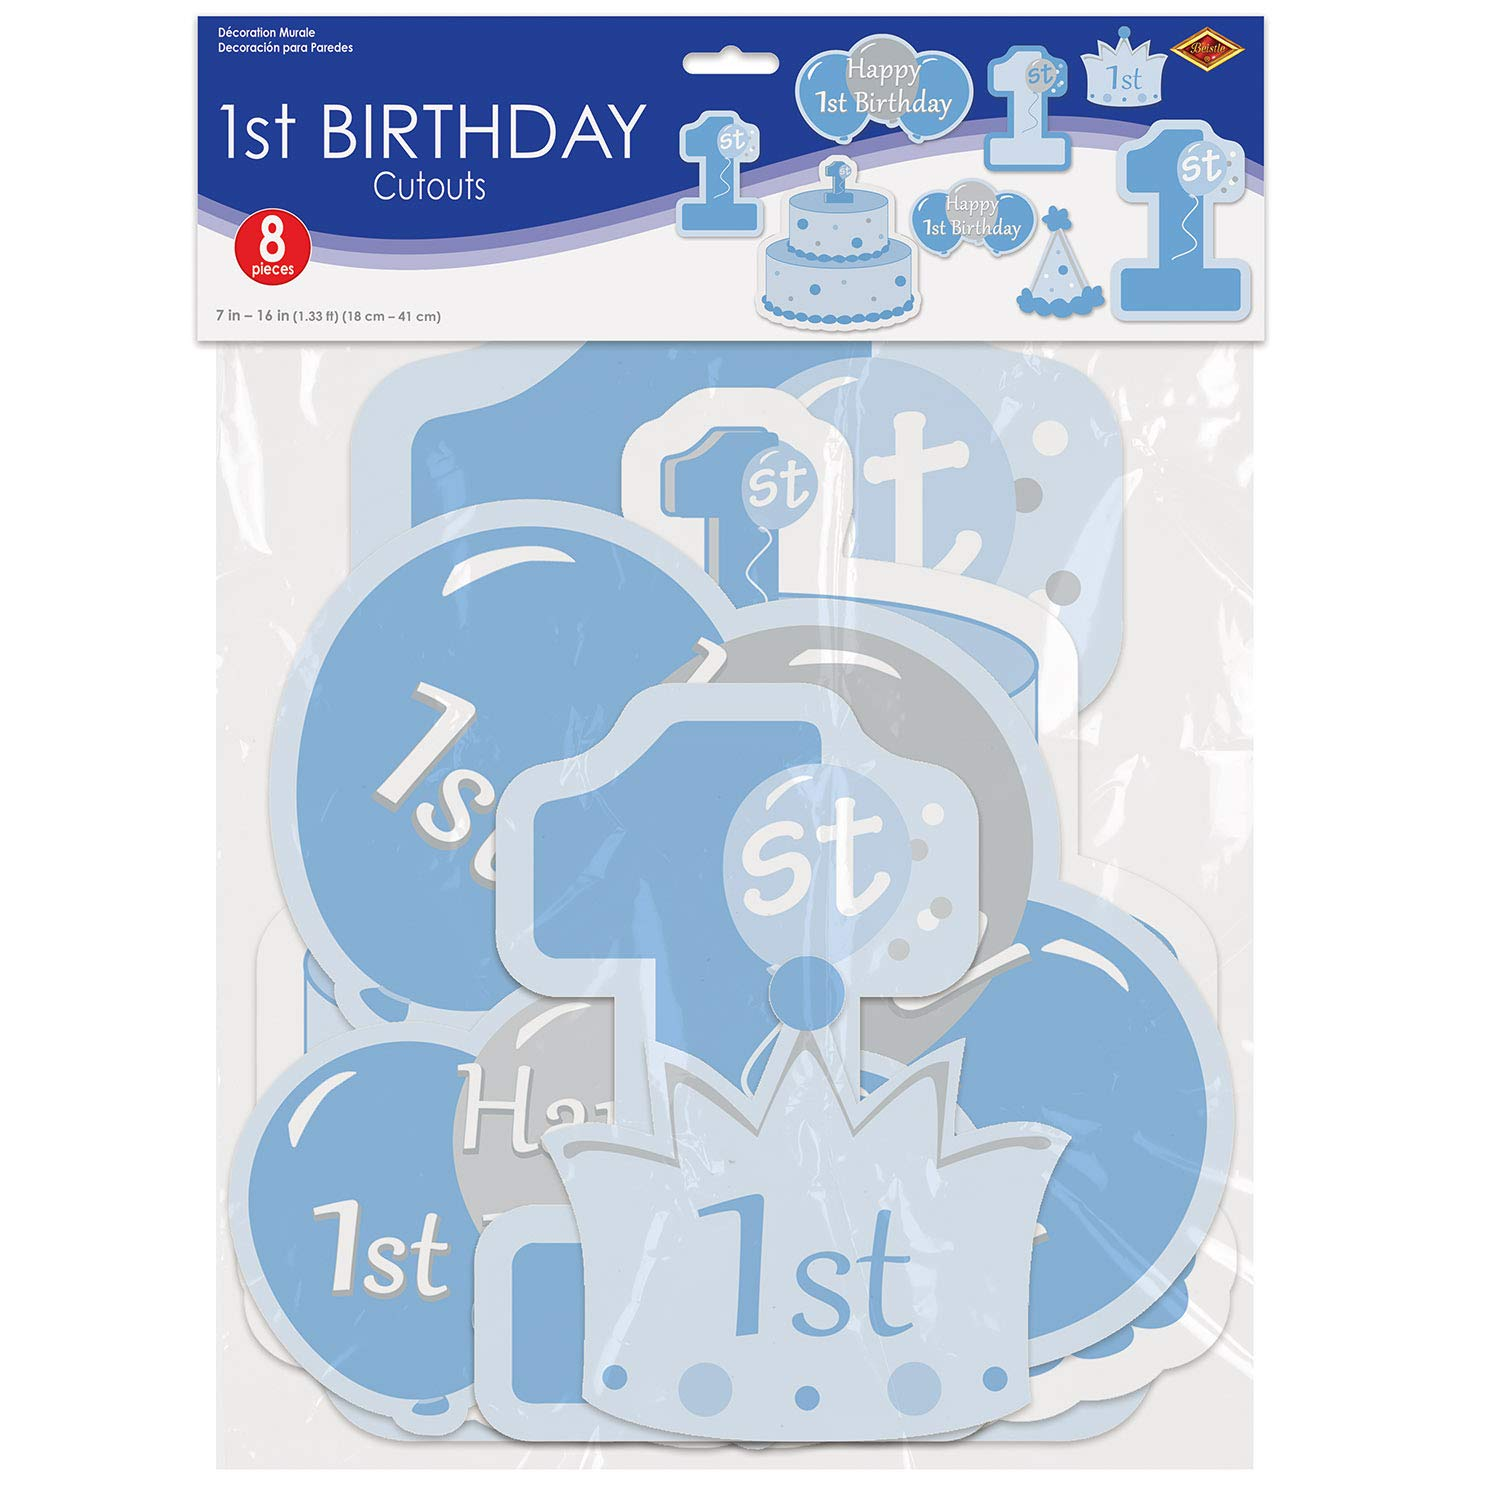 Beistle 1st Birthday Boy Decorations, Blue and Yellow Colored Assorted Cutouts 7 Inch to 16 Inch, Pack 96